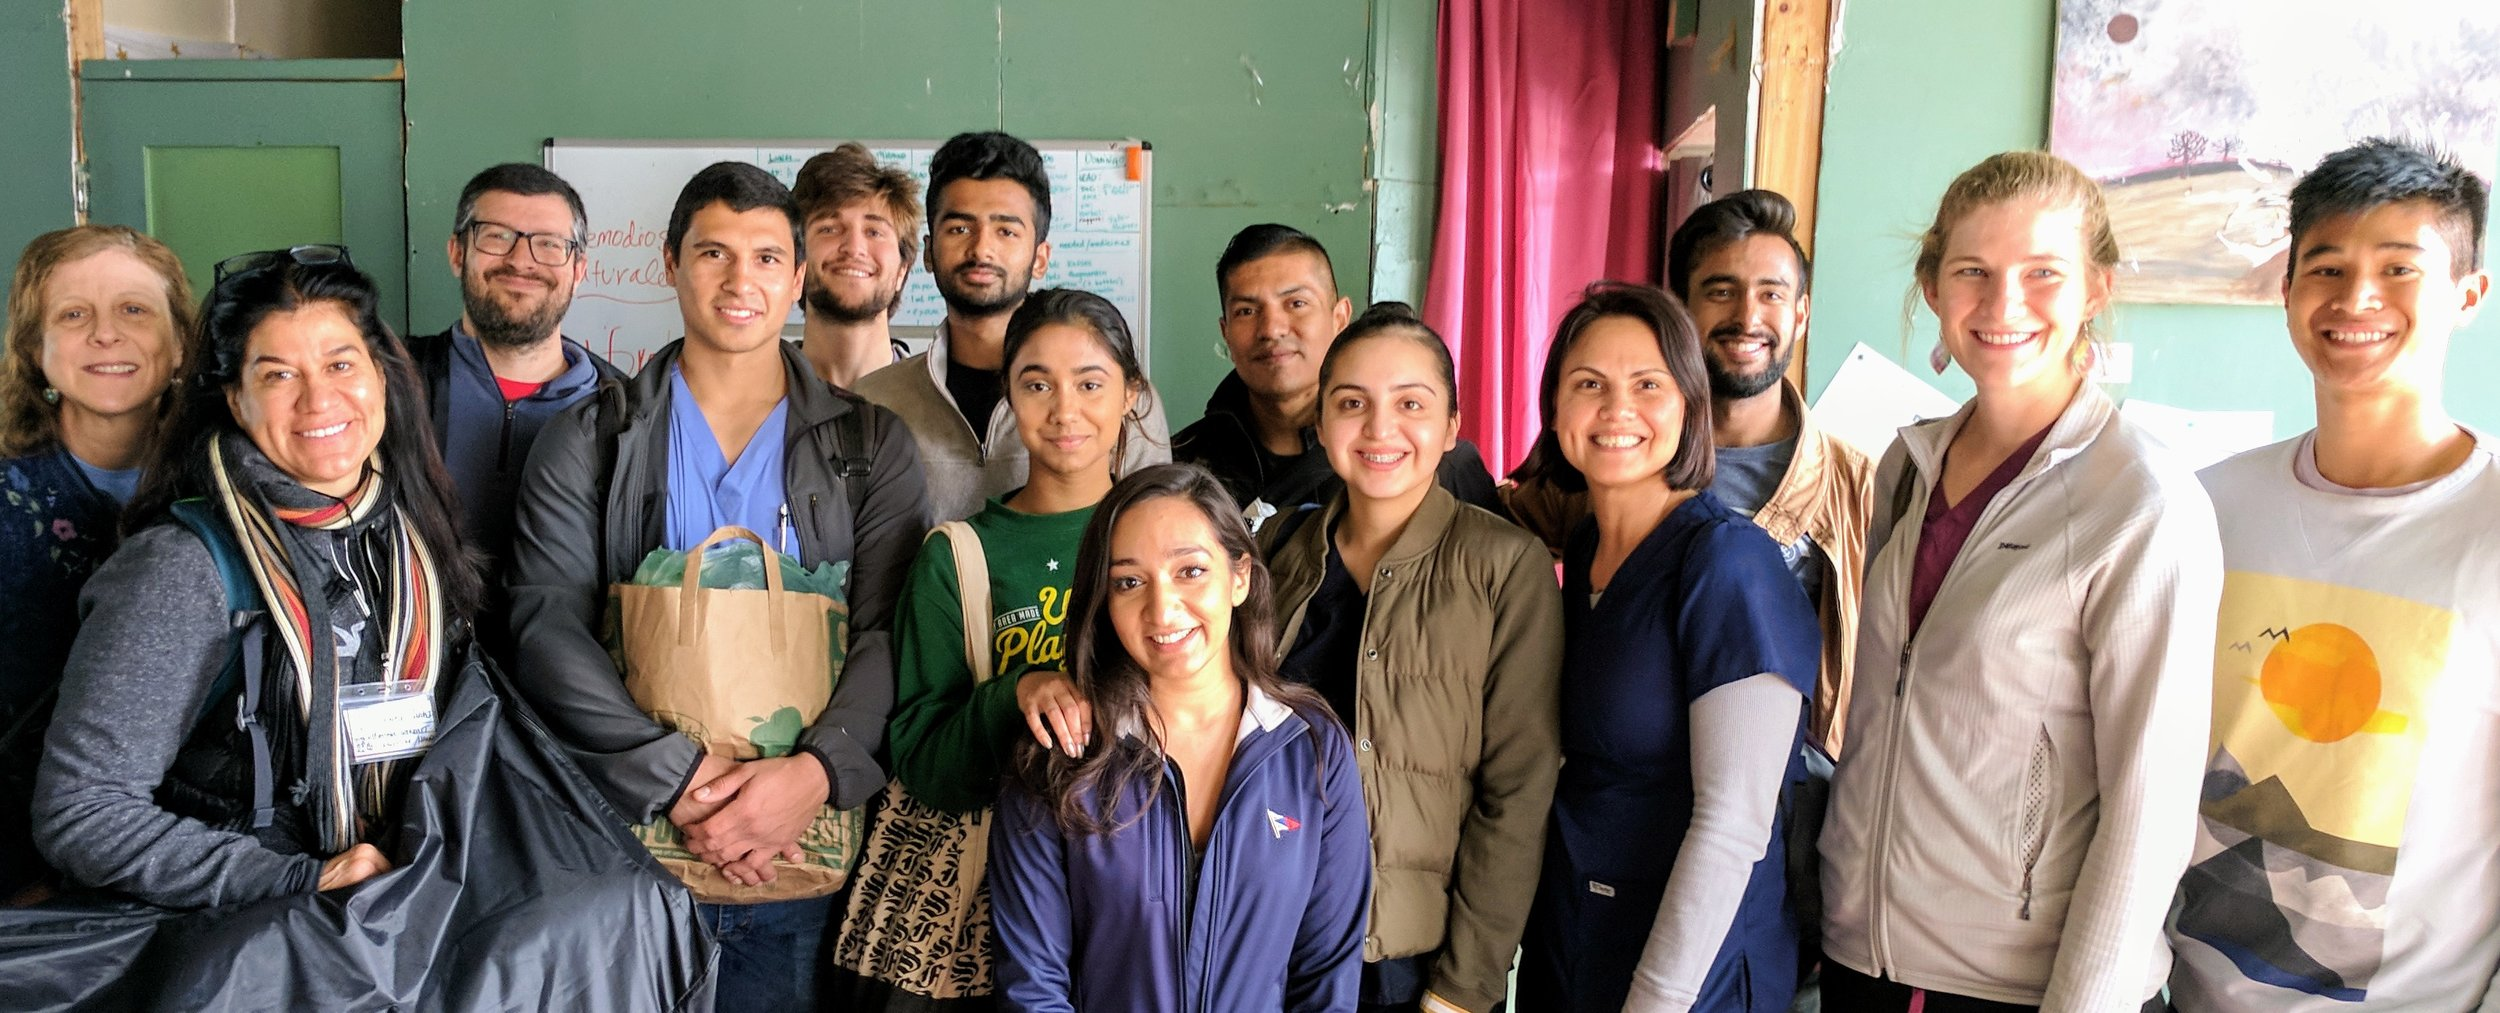 A team of American doctors from San Diego and the Bay Area provided medical services to asylum seekers.